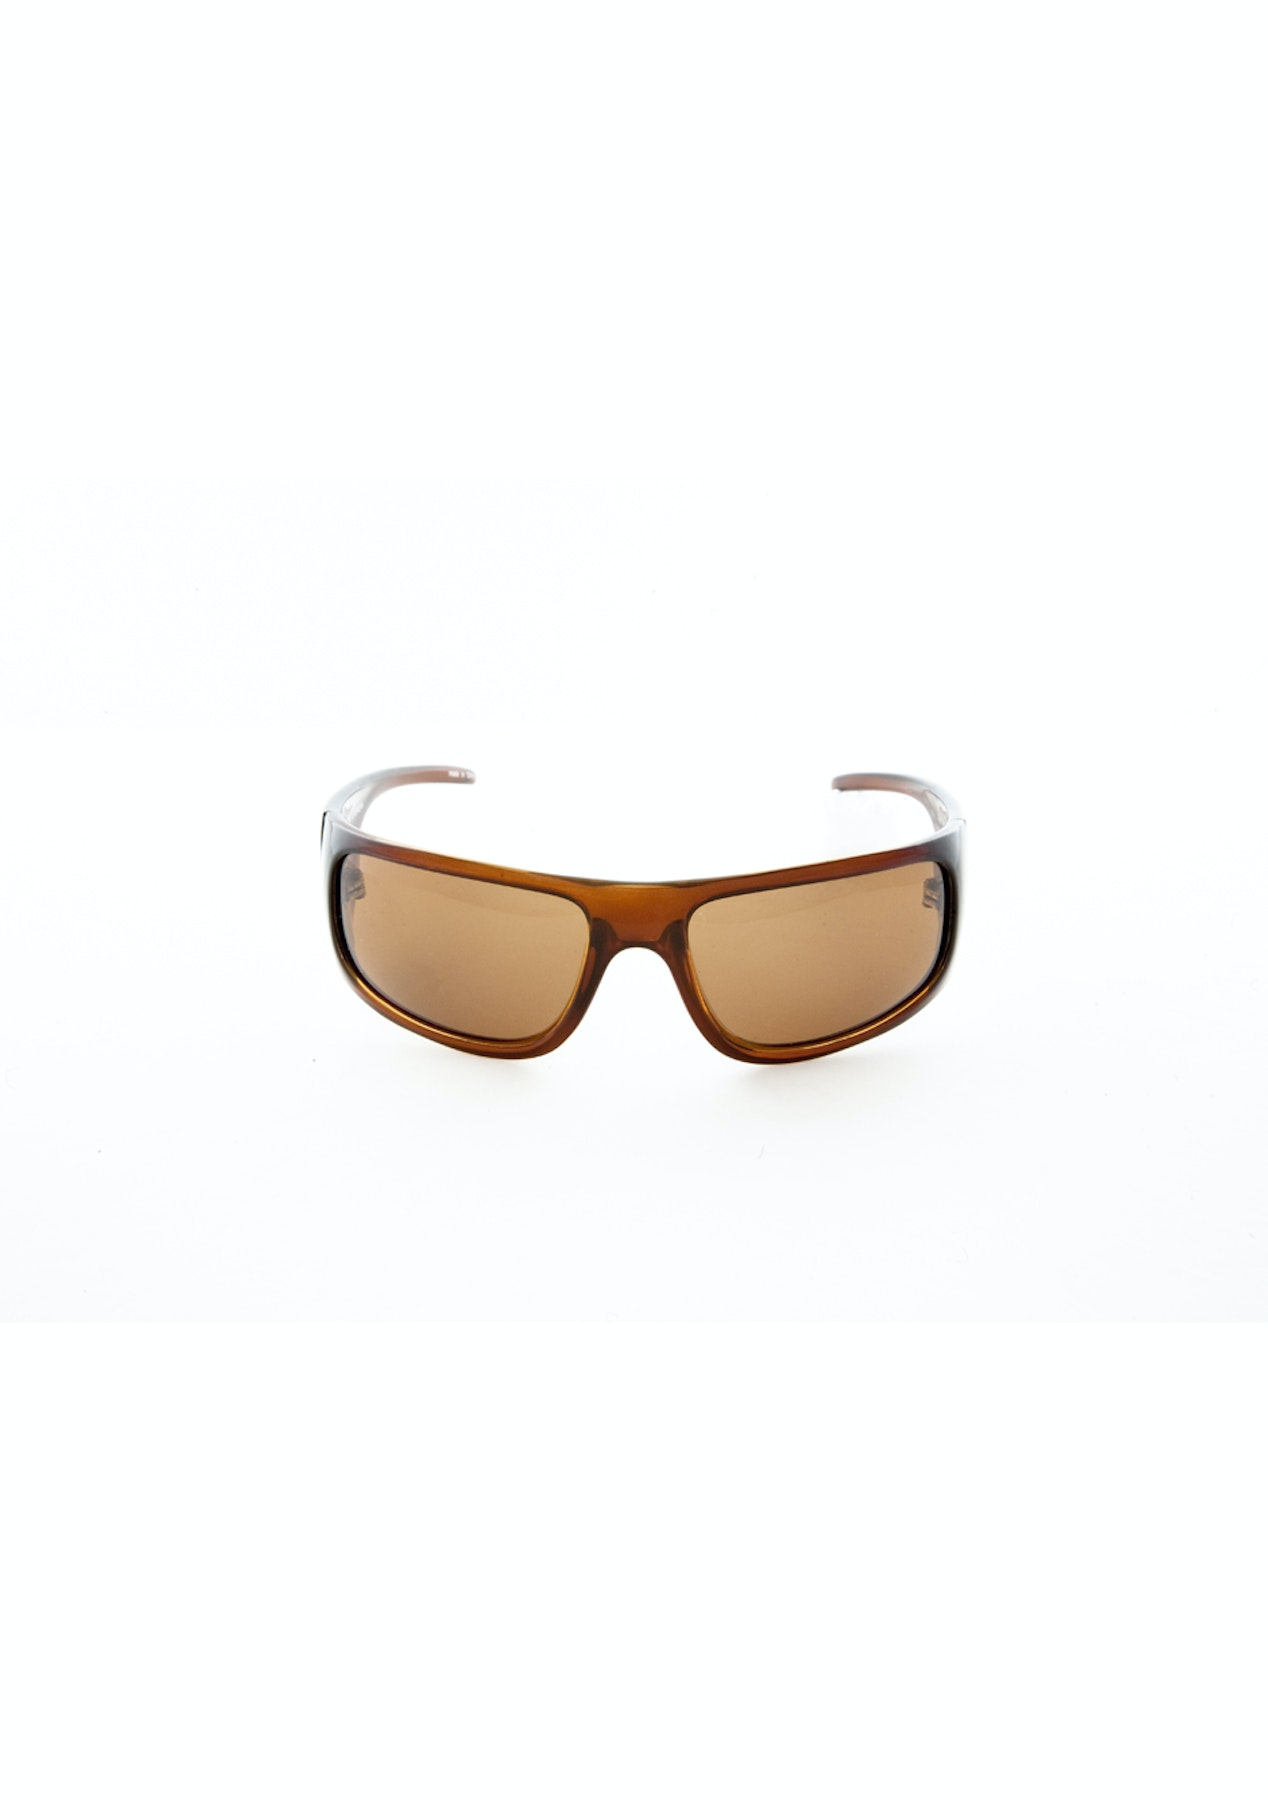 c90f0366ea Filtrate Eyewear Vinyl Sunglasses - Choc   Brown - Sunglasses Super Sale  From  9.95 - Onceit